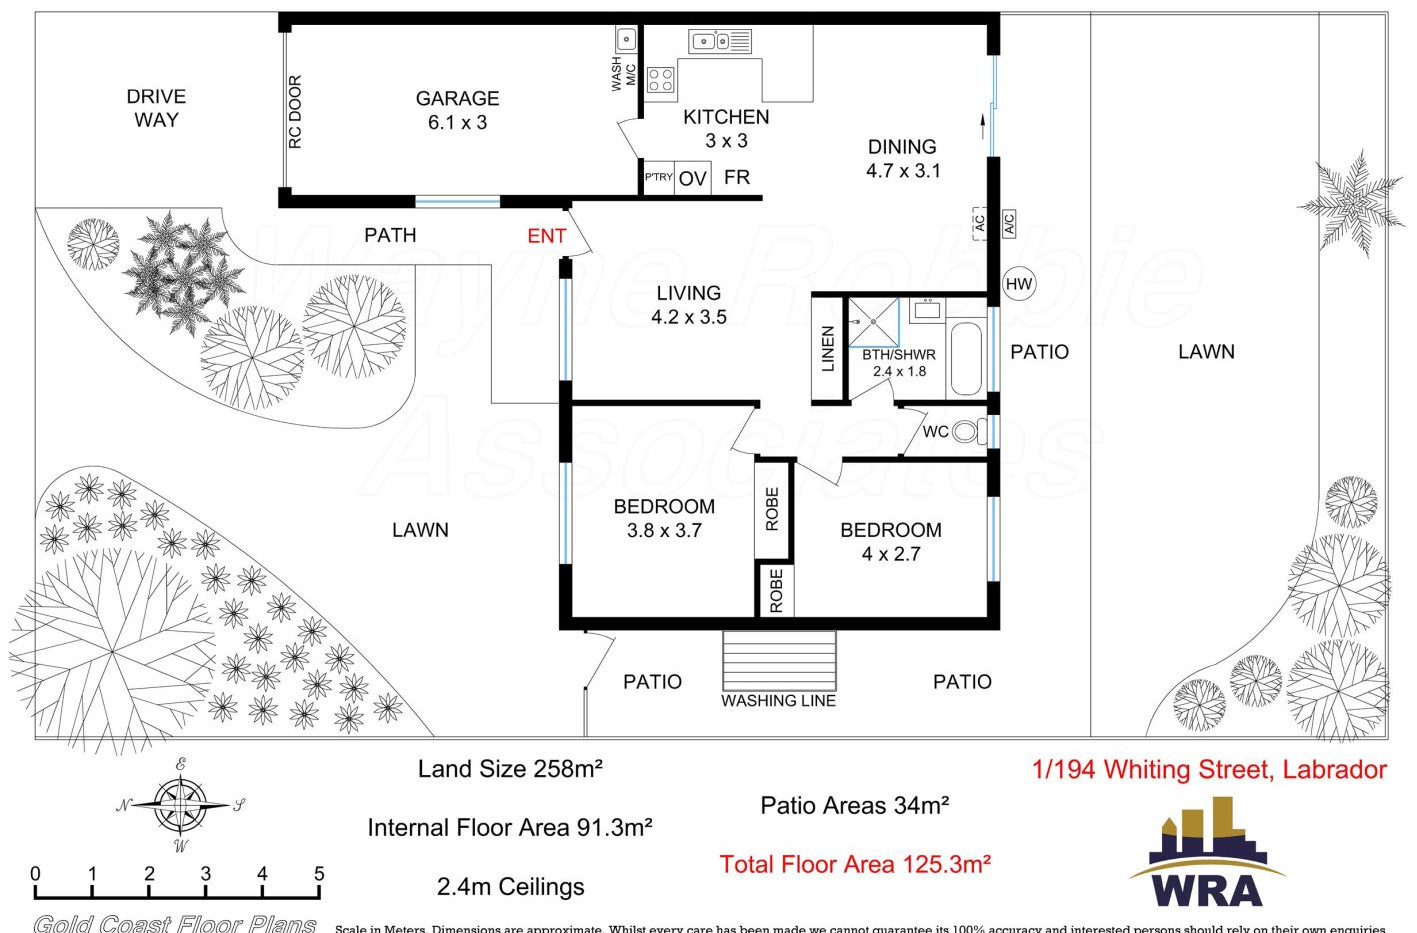 WhitingSt_Web_Floor Plan.jpg